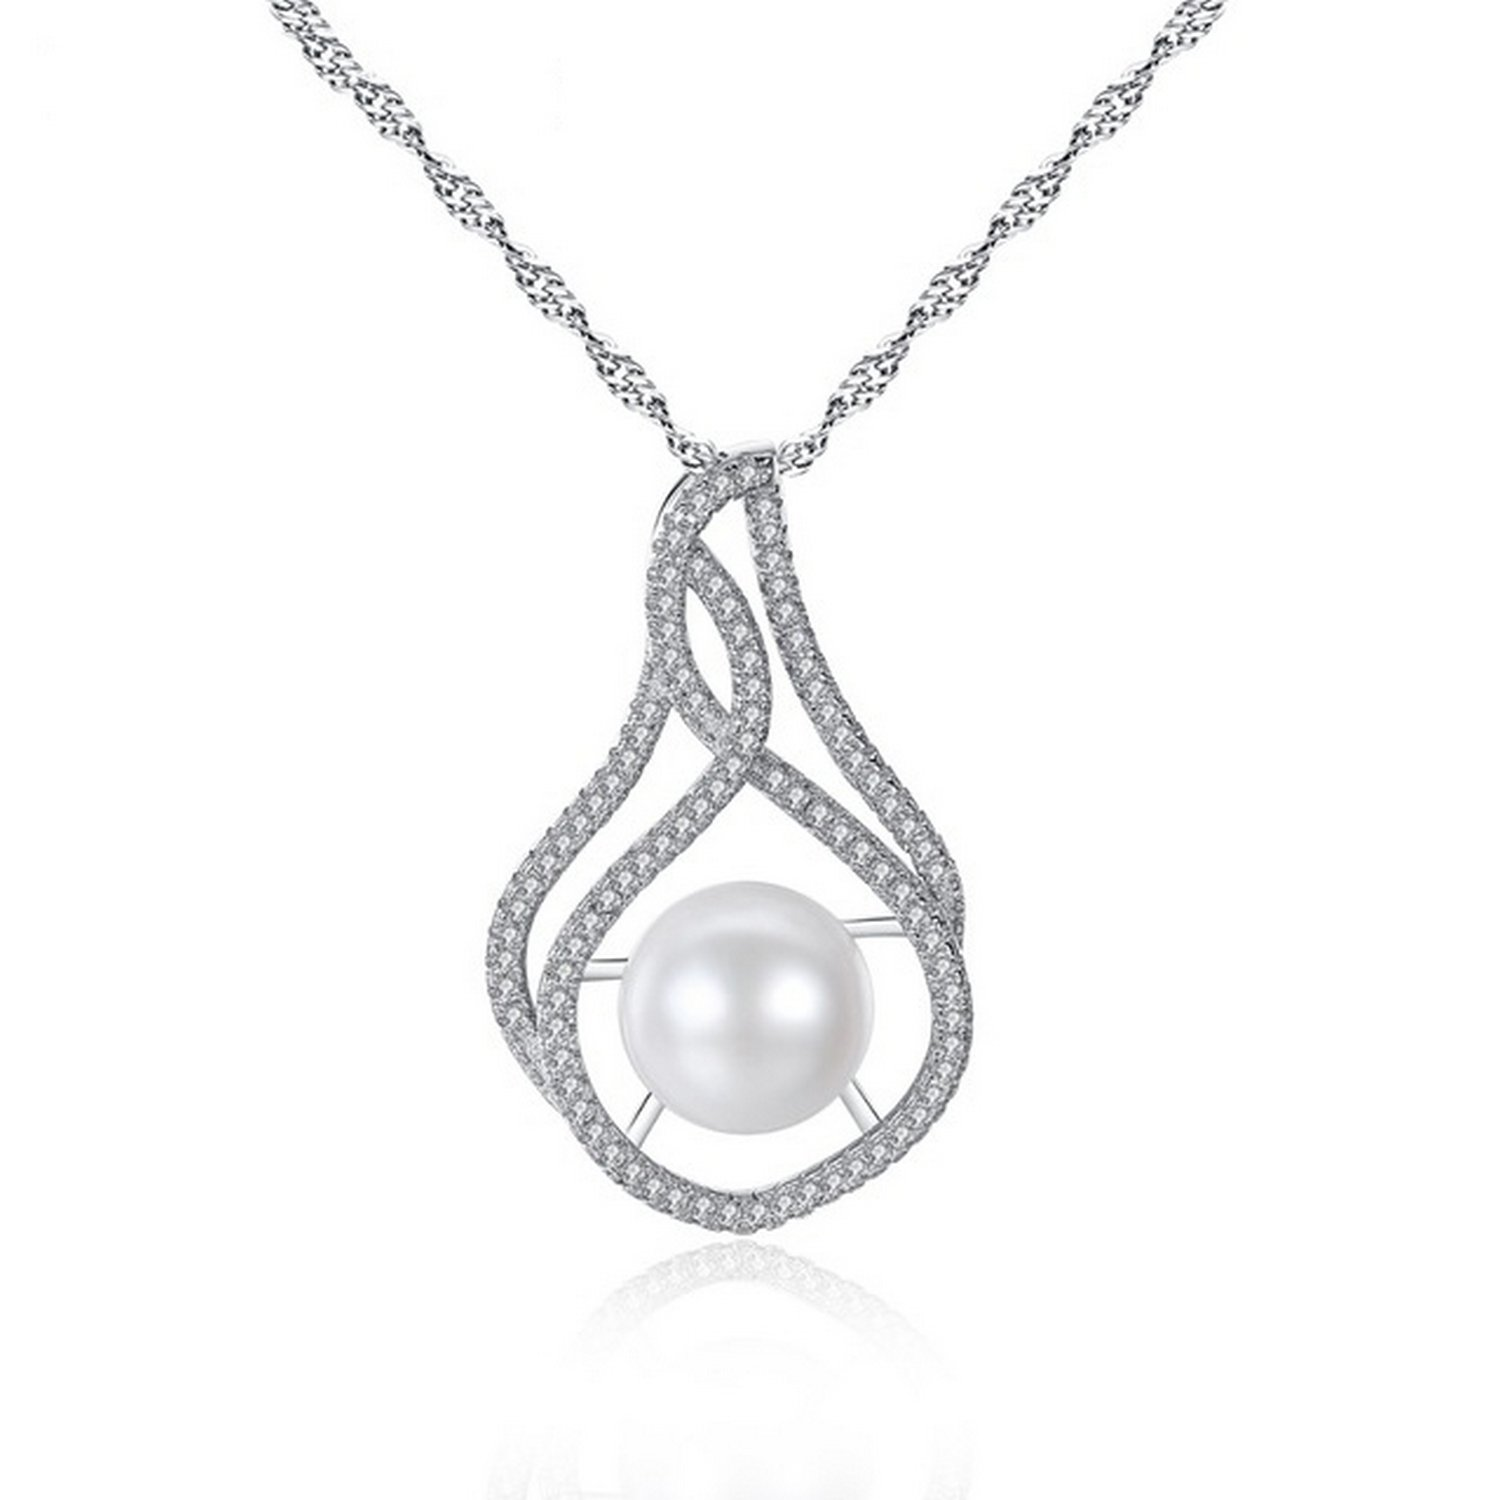 CS-DB Jewelry Silver Luxury Pearl Chain Charm Pendants Necklaces